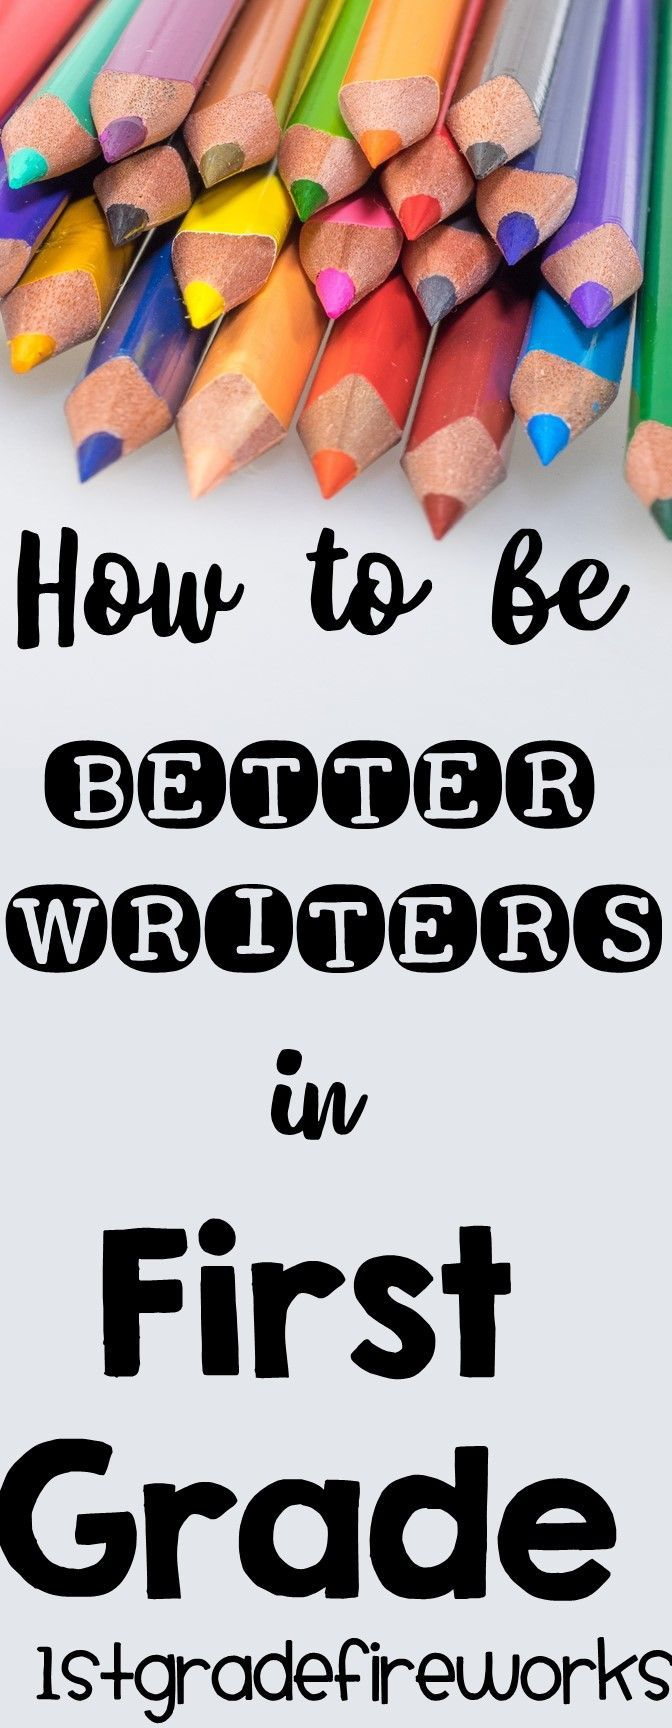 Helping First Graders become BETTER WRITERS. Blog Post to help ALL who teach writing! :) https://1stgradefireworks.blogspot.com/2017/01/how-to-be-better-writers-in-first-grade.html